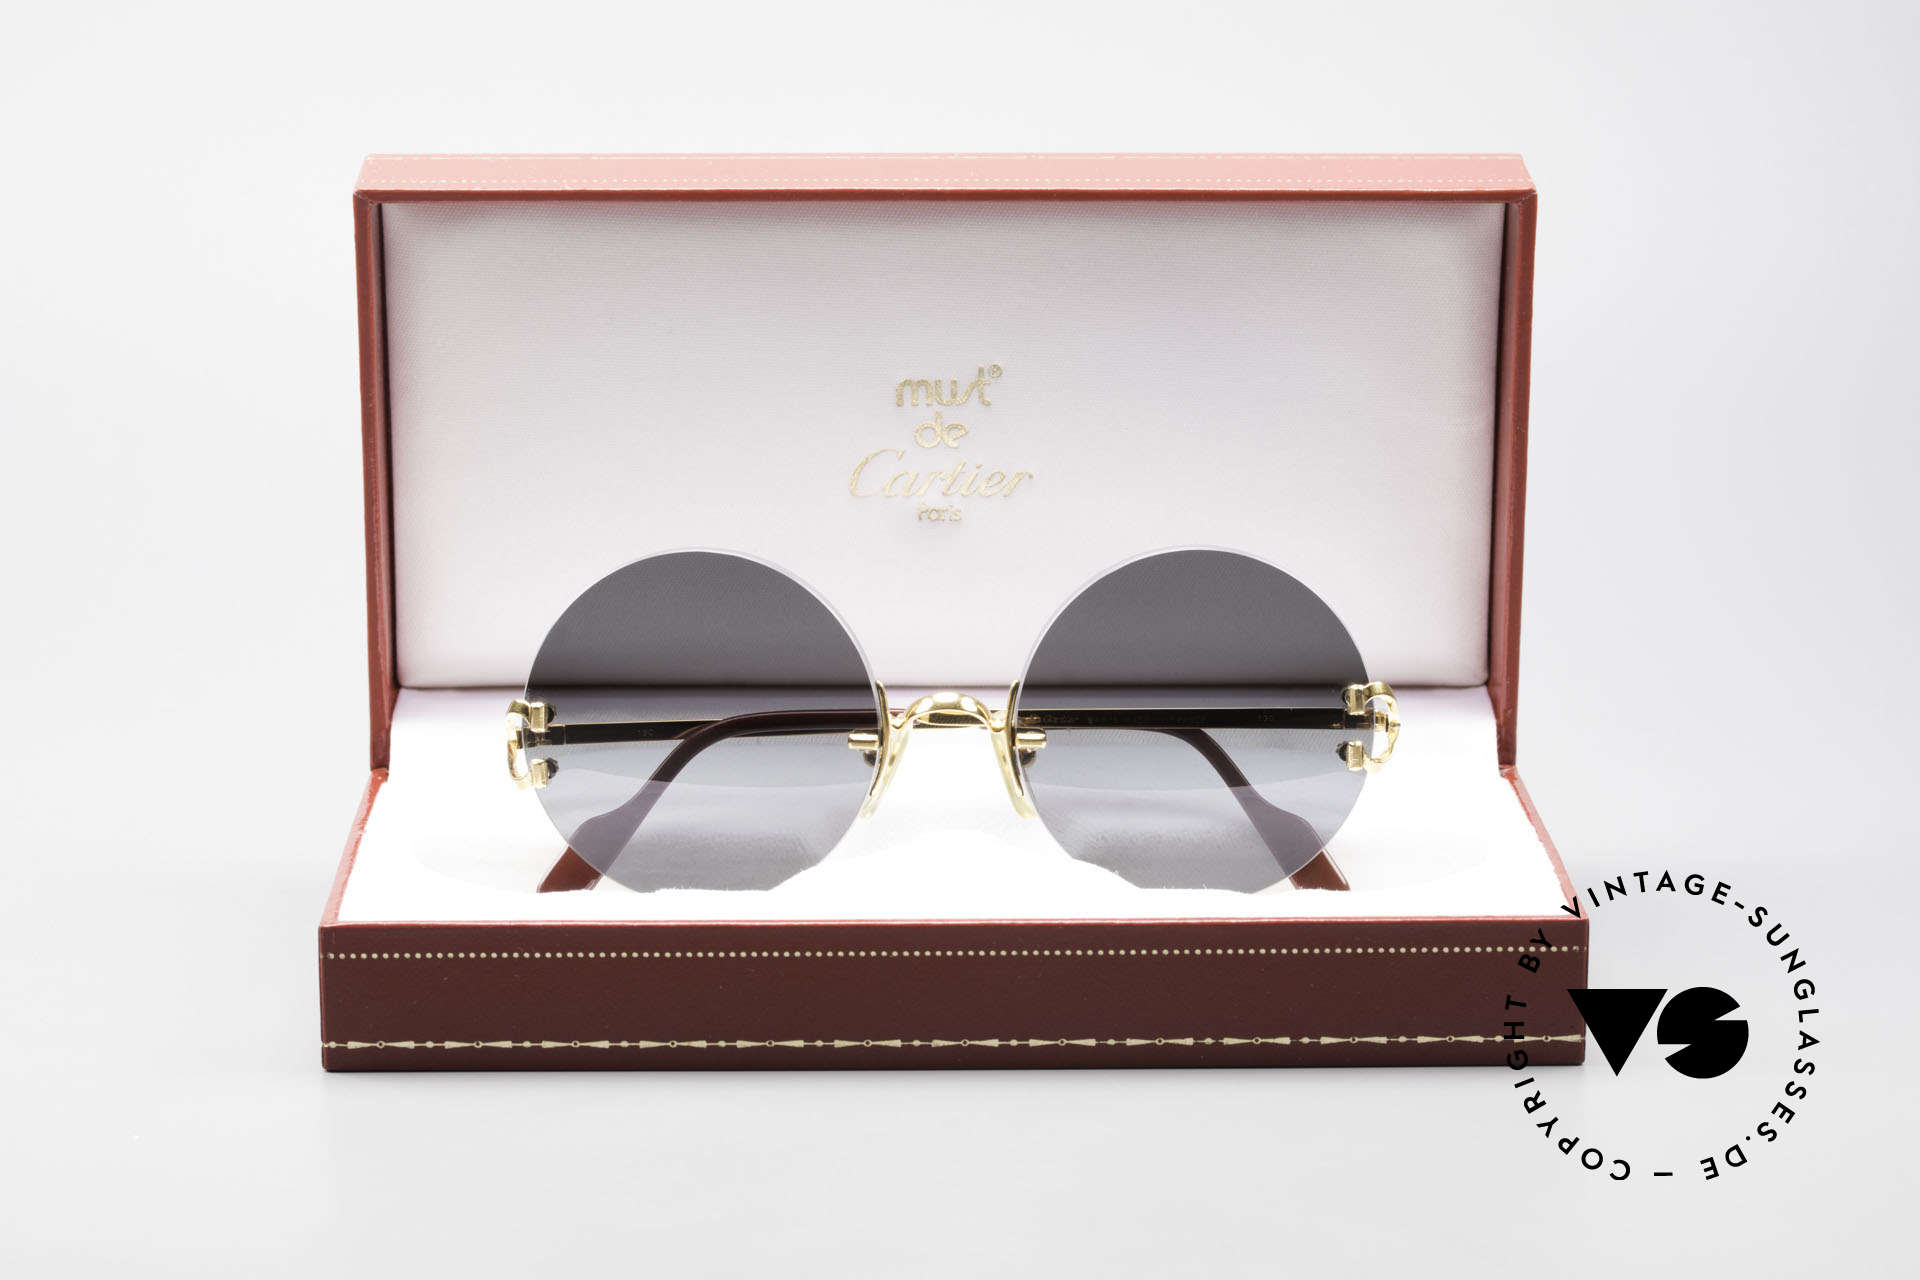 Cartier Madison Small Round Luxury Sunglasses, Size: small, Made for Men and Women